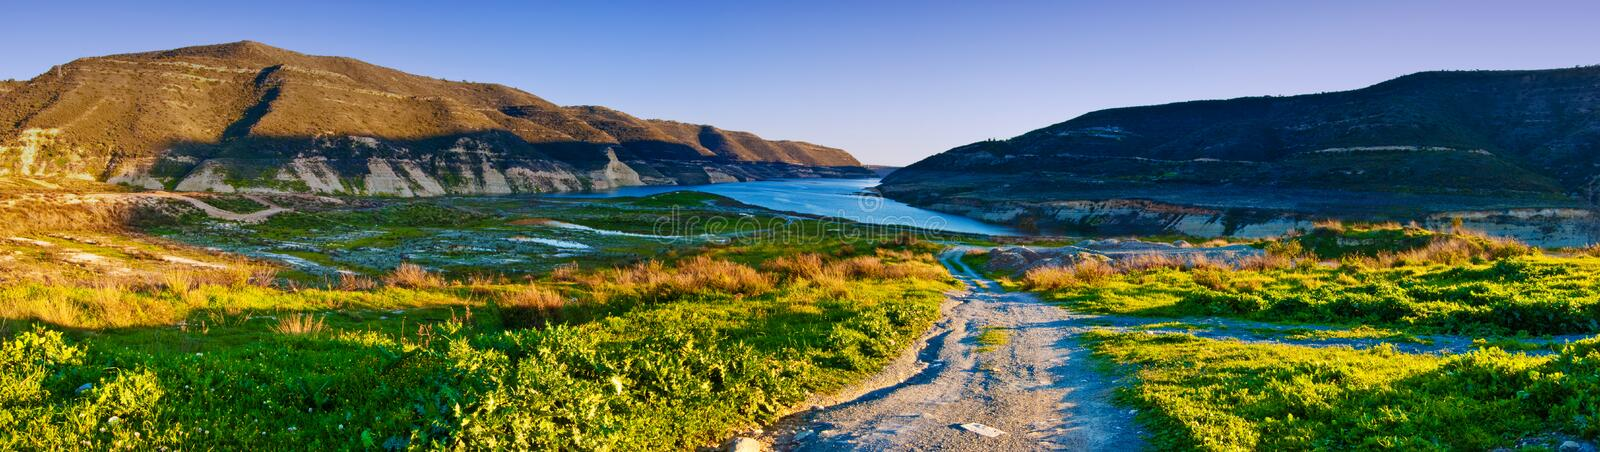 Download Panorama Of The Mountains Of Cyprus Stock Image - Image: 9440315